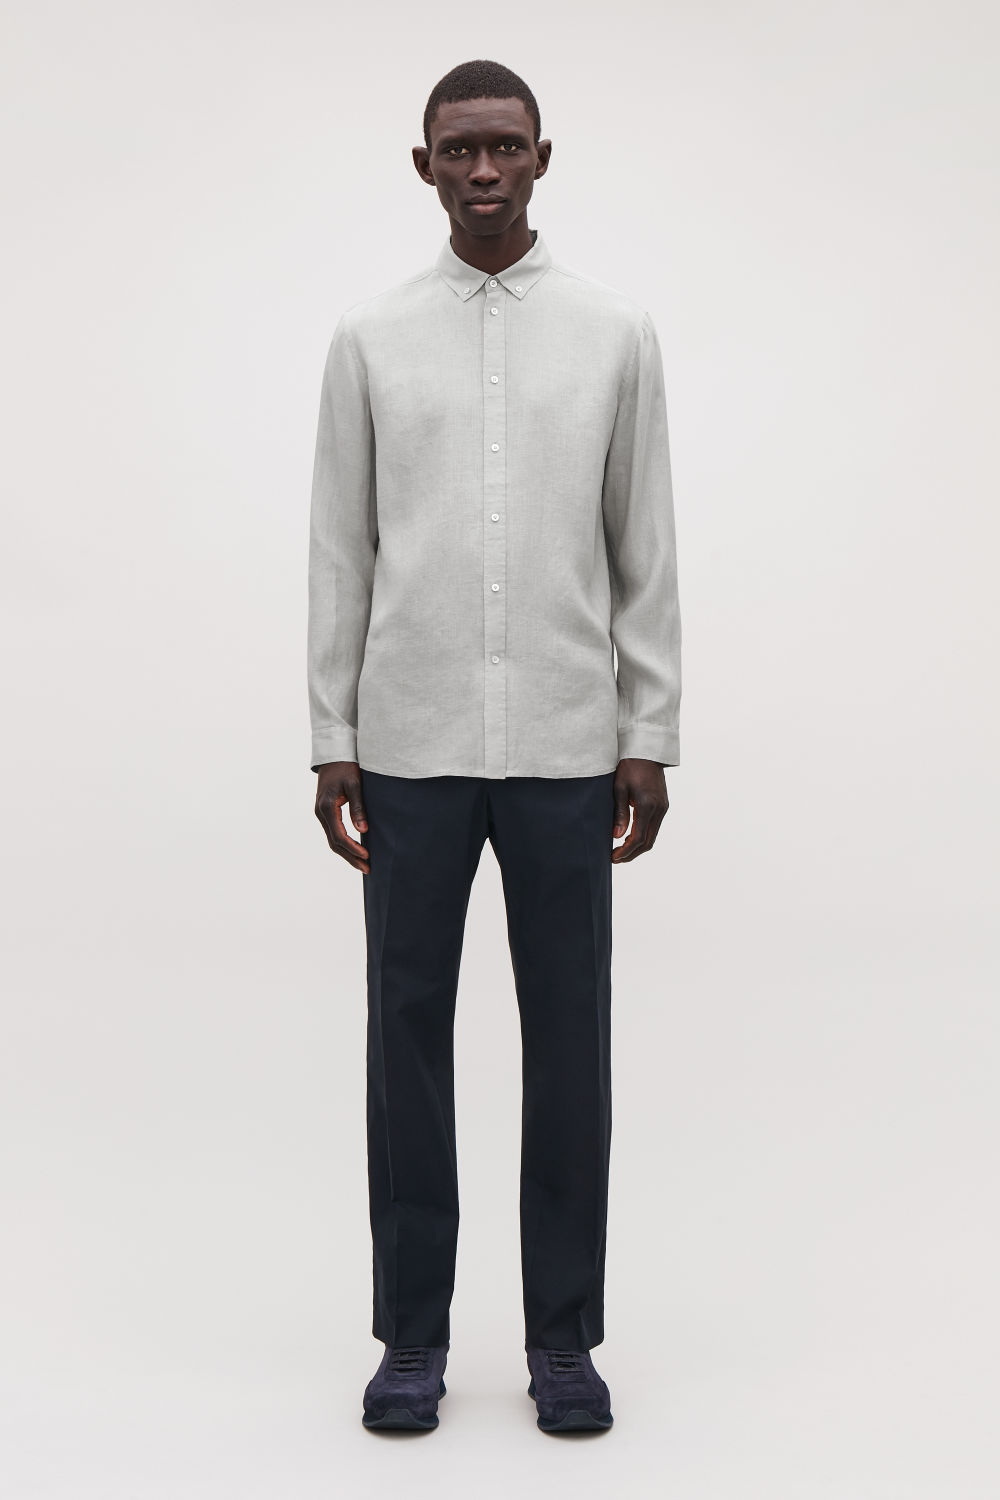 5974101438a White Shirt Black Pants Business Casual - Gomes Weine AG